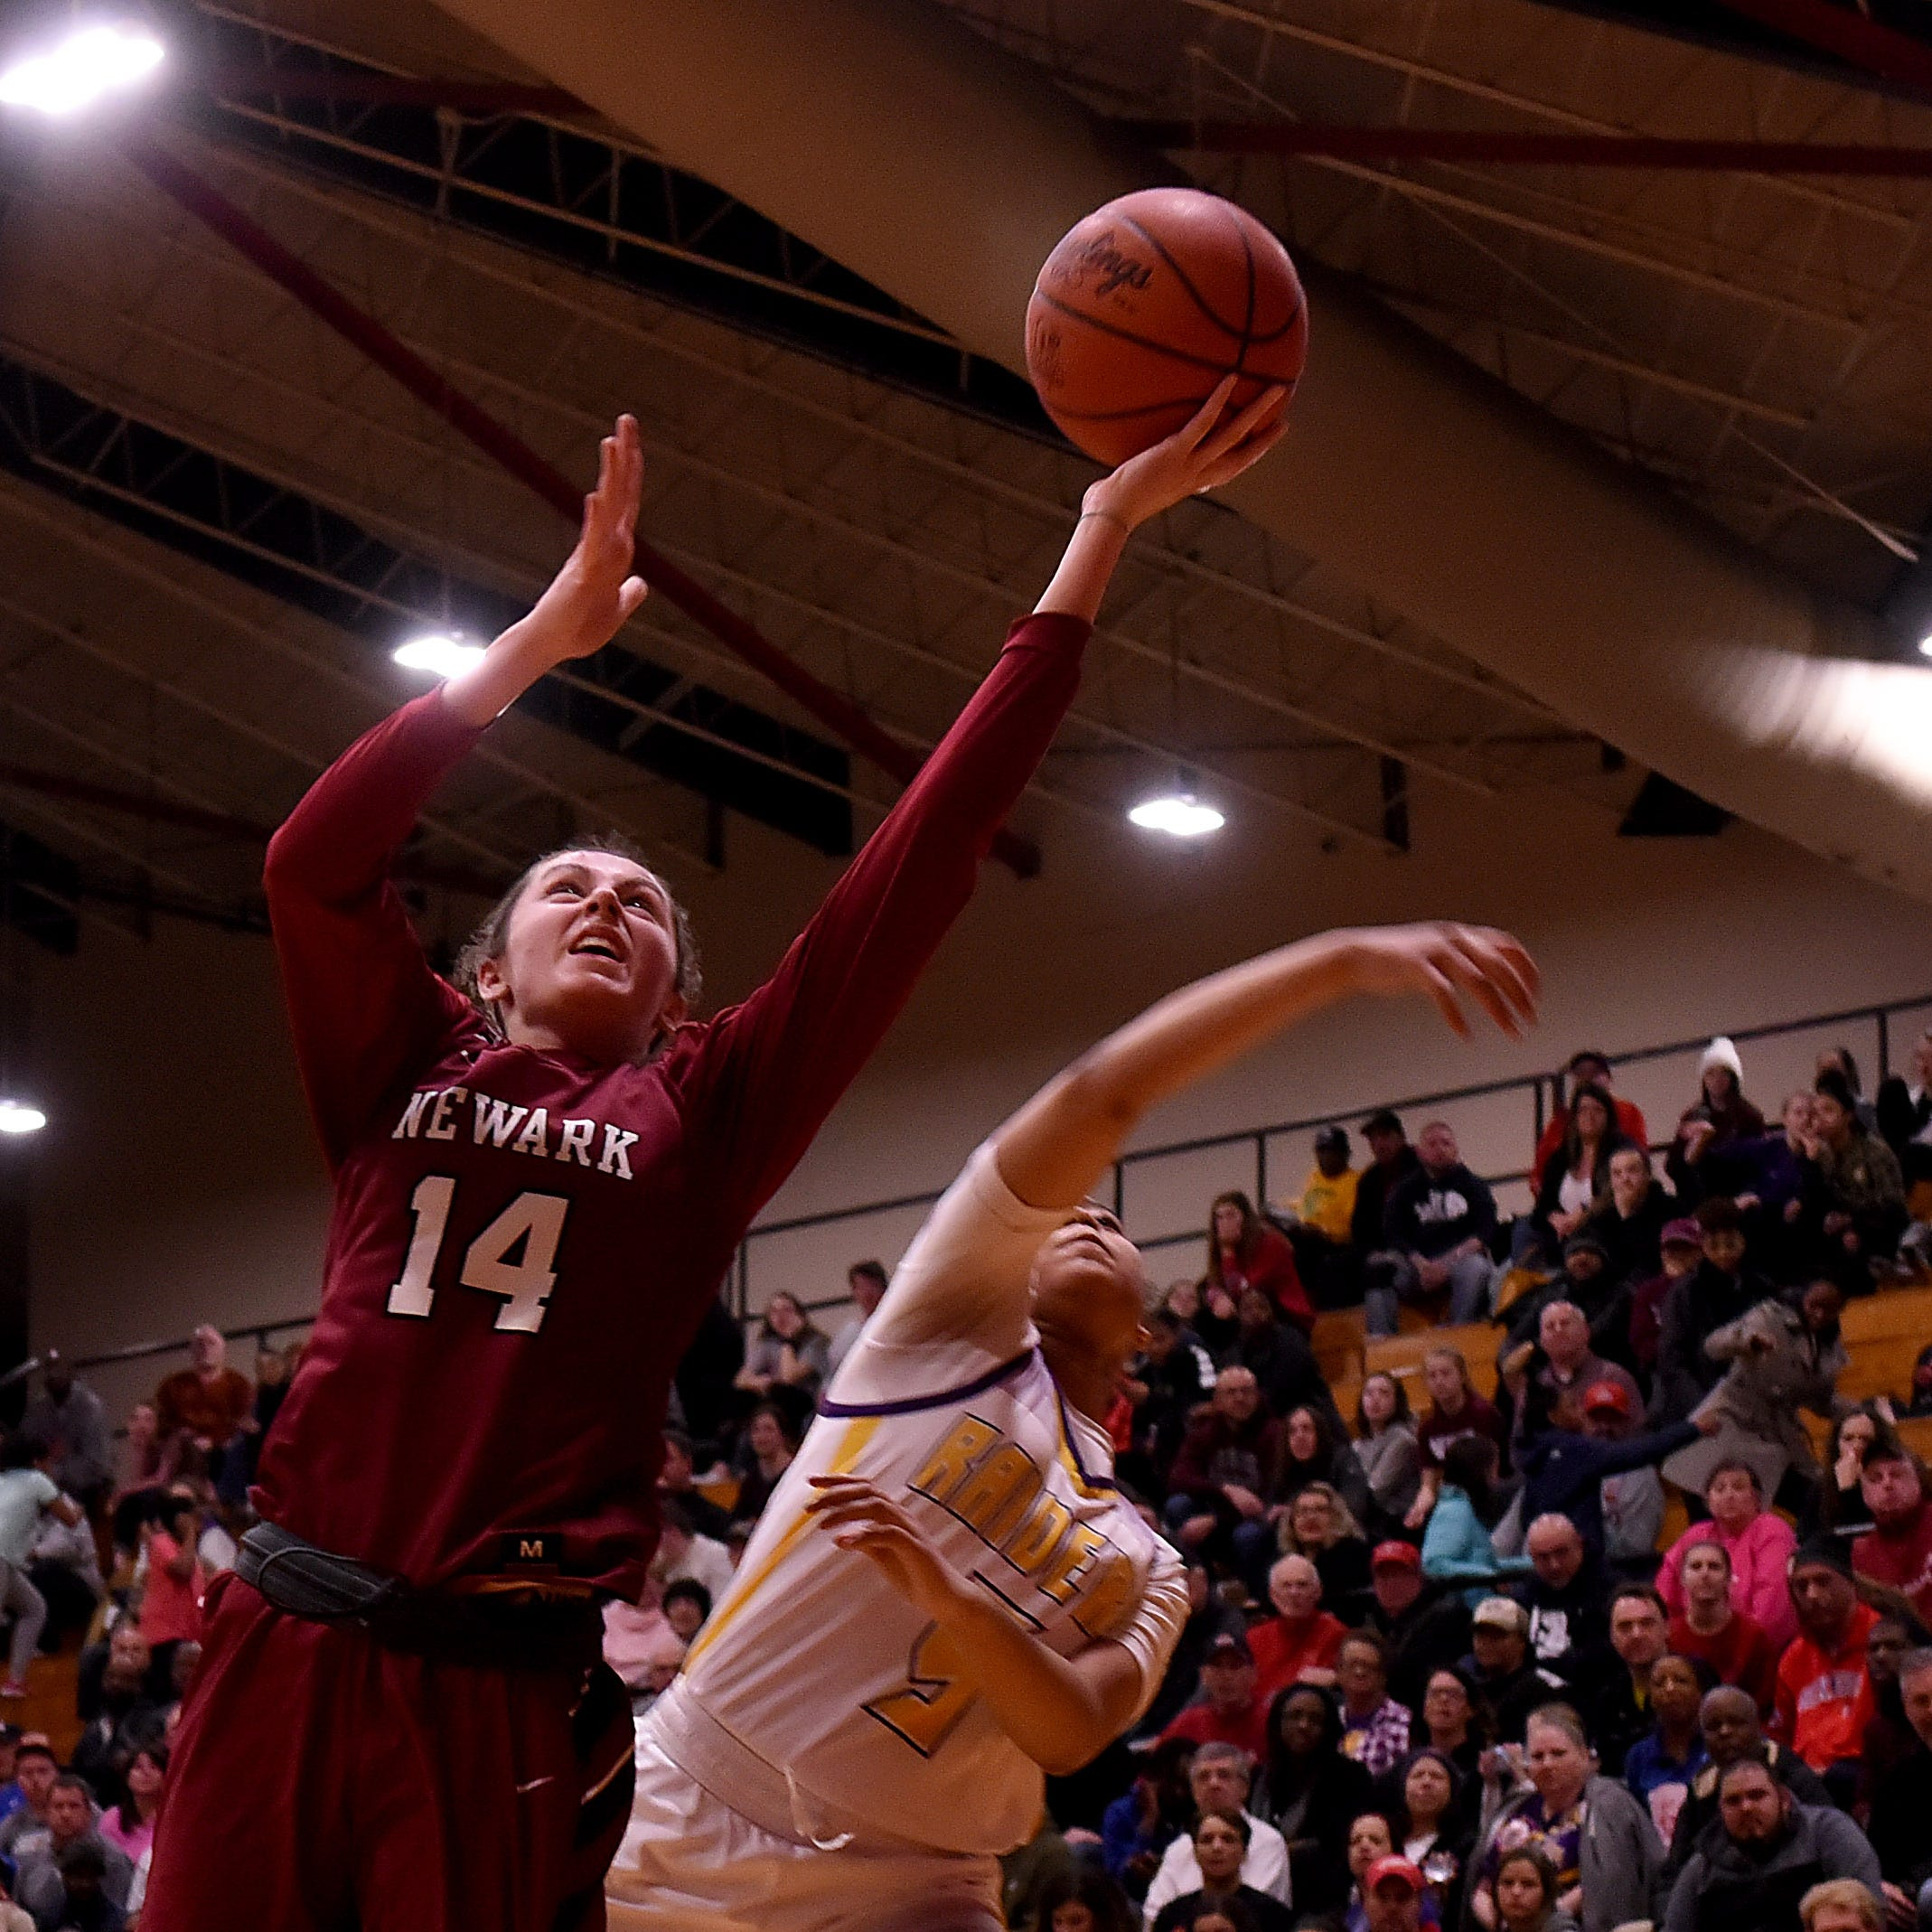 Newark's Shumate, Sharps receive third All-Ohio girls basketball honors